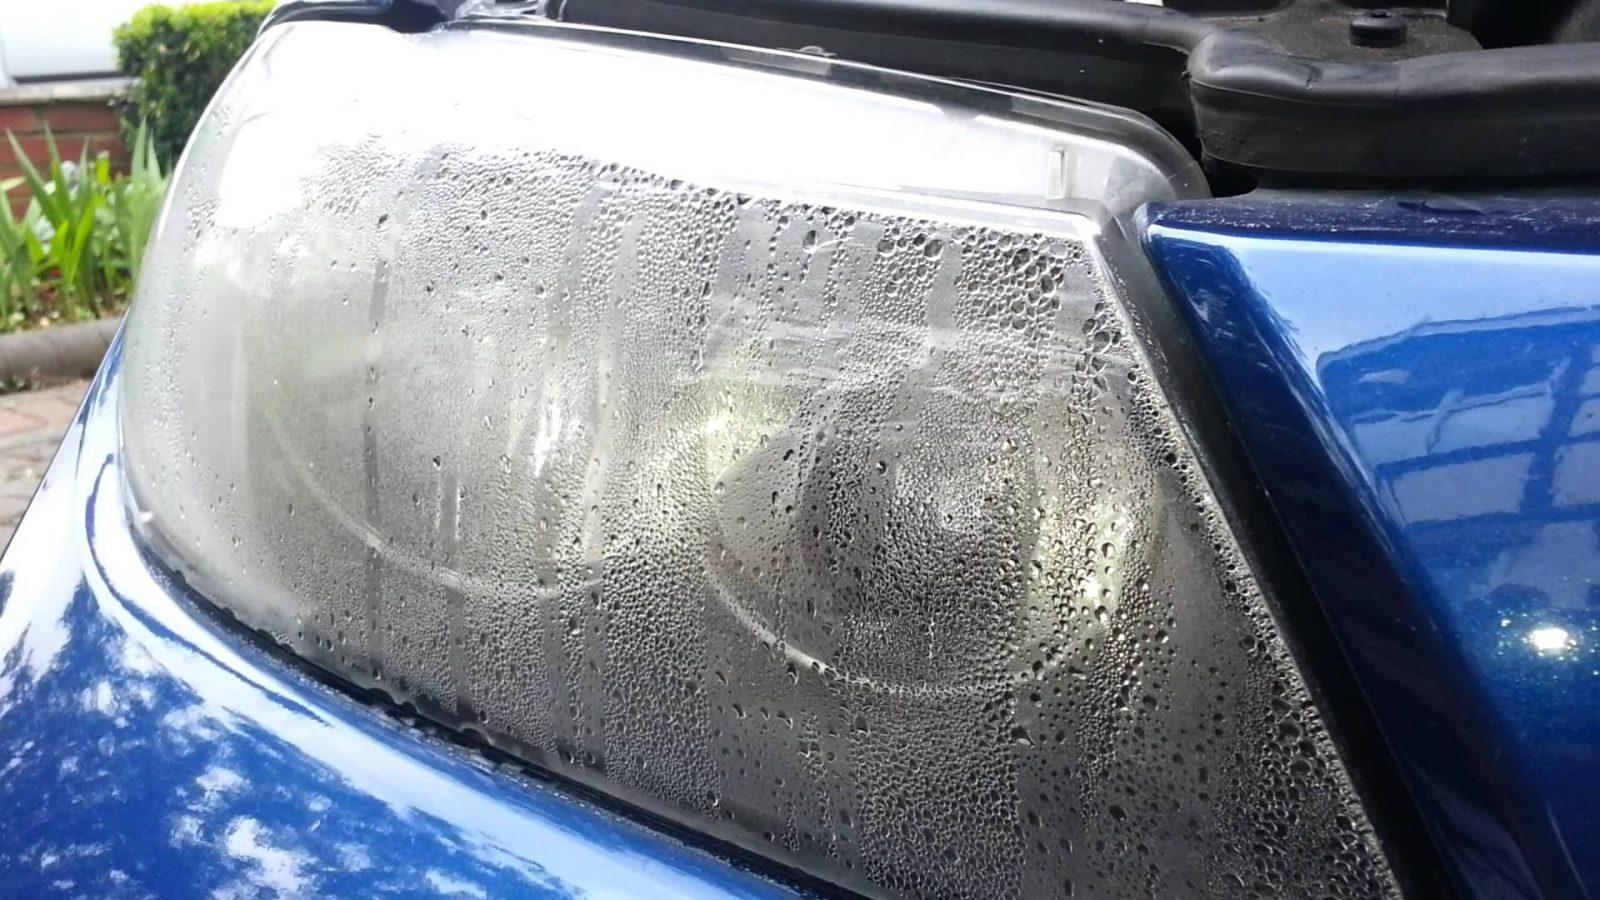 How To Remove Moisture From Headlight Car From Japan